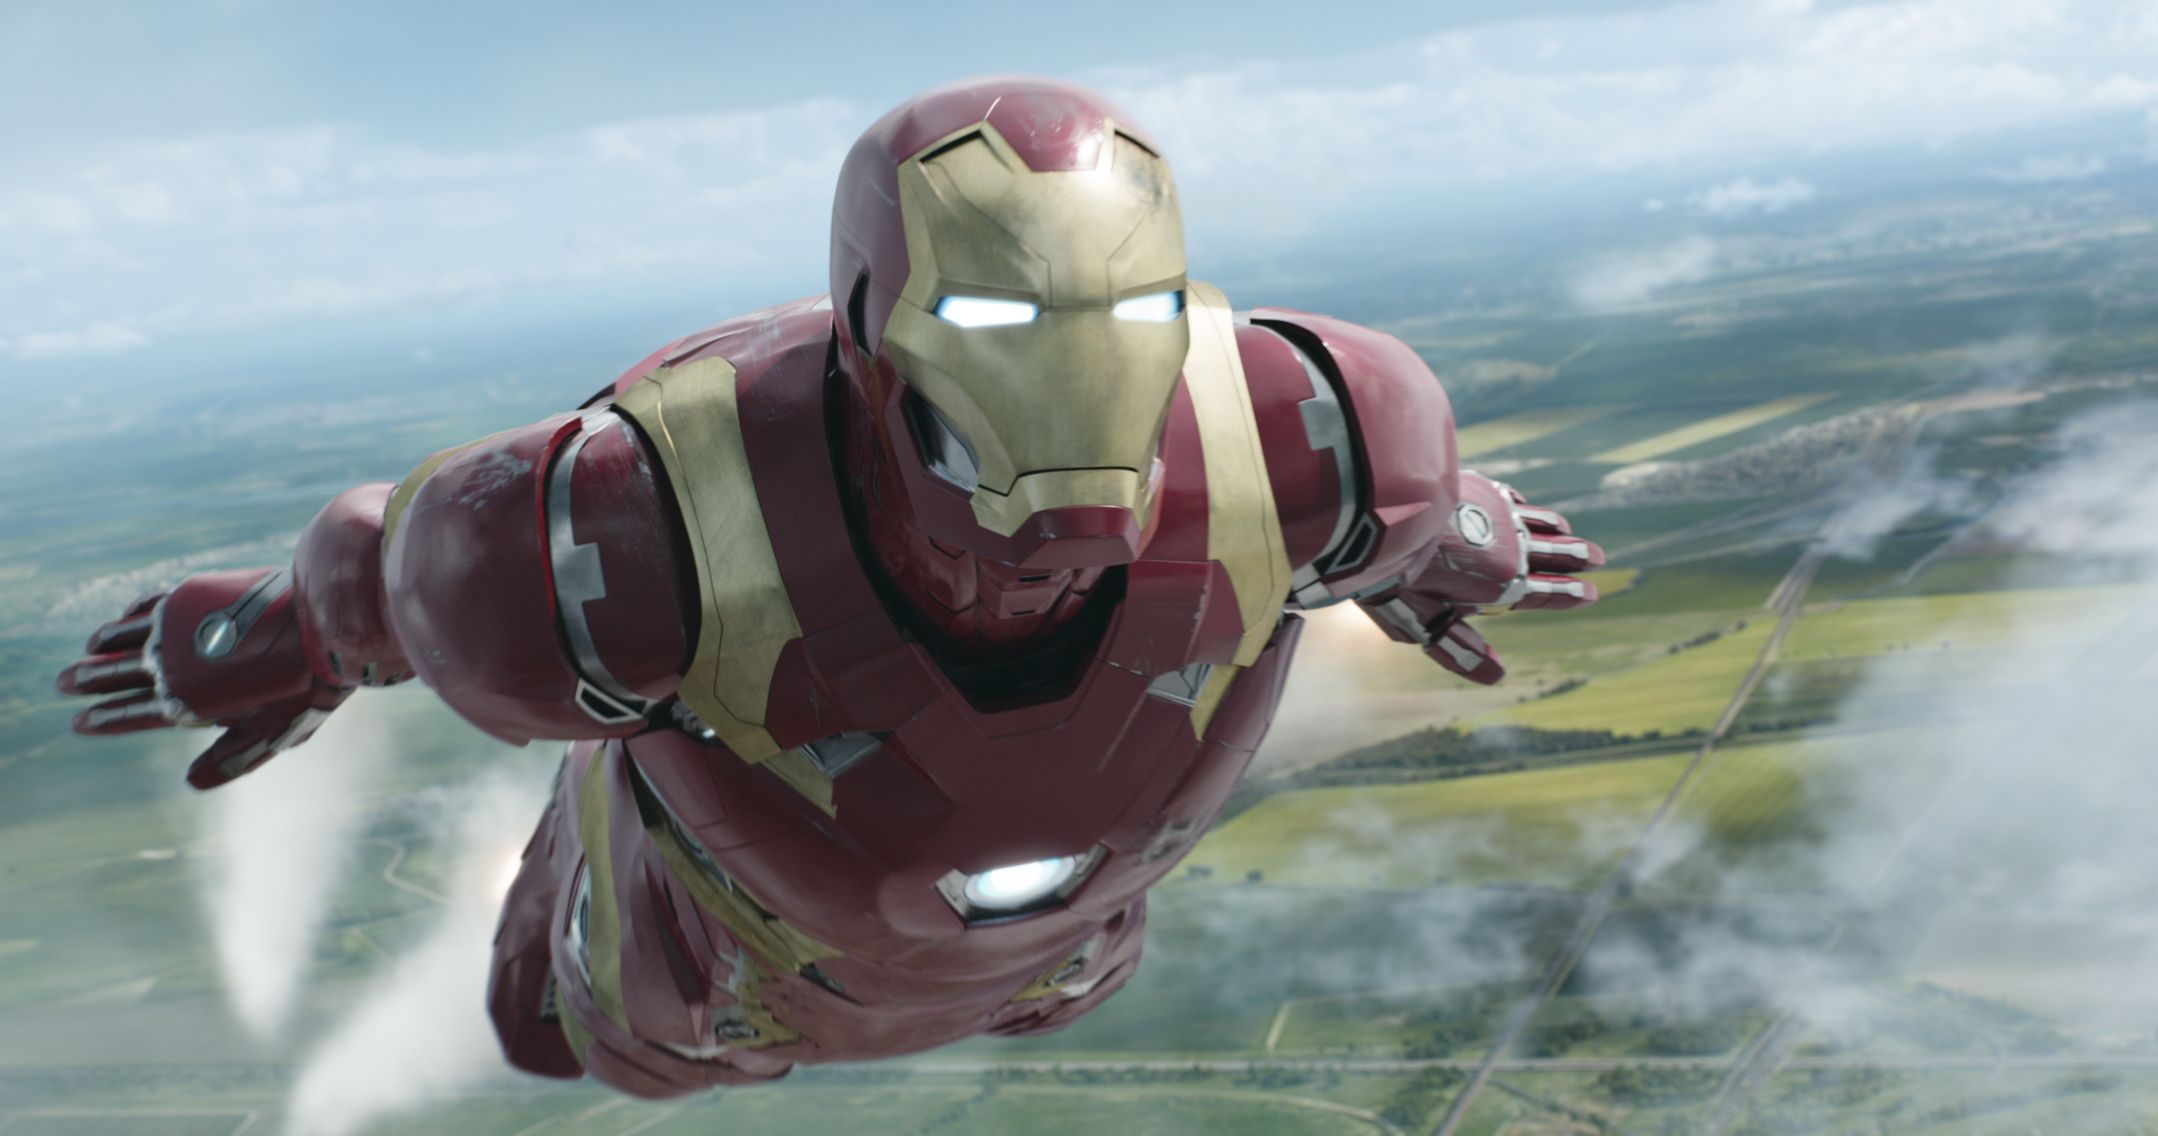 Avengers Infinity War Iron Man Armor Revealed In Set Photos Collider